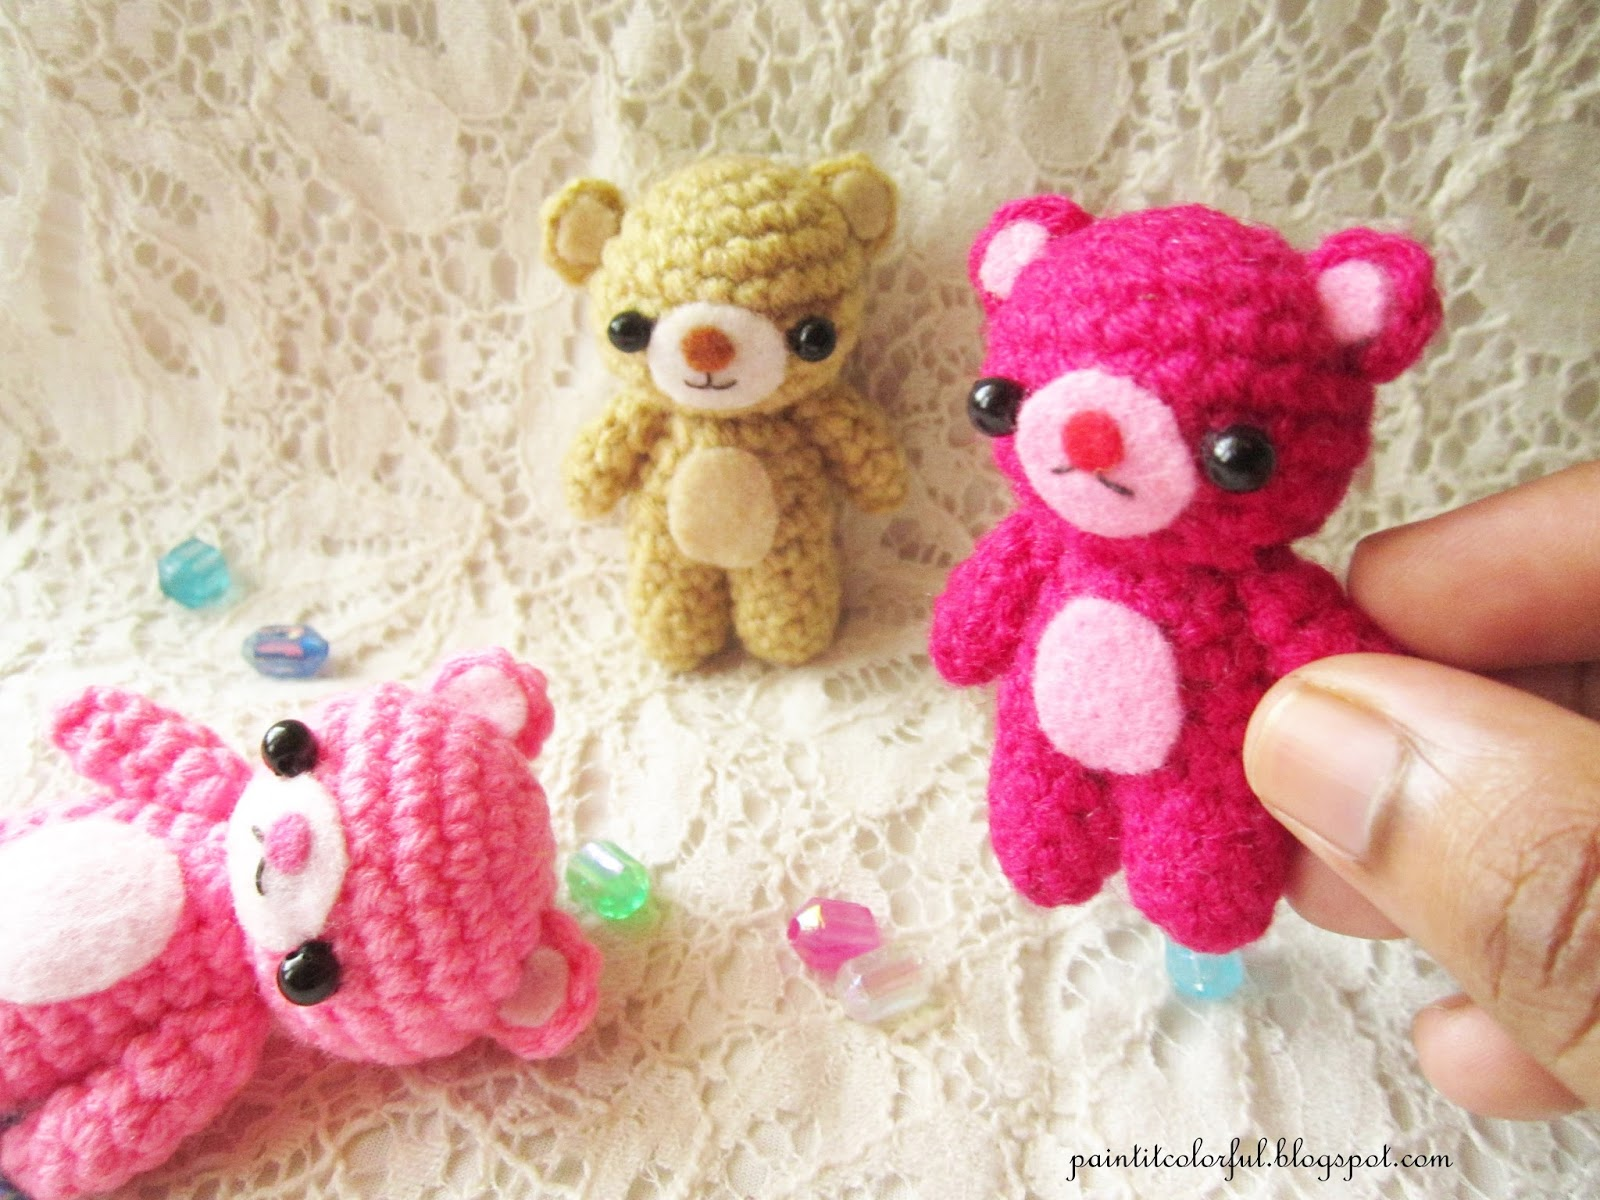 Amigurumi Free Patterns Bear : Amigurumi teddy bear pattern a little love everyday!